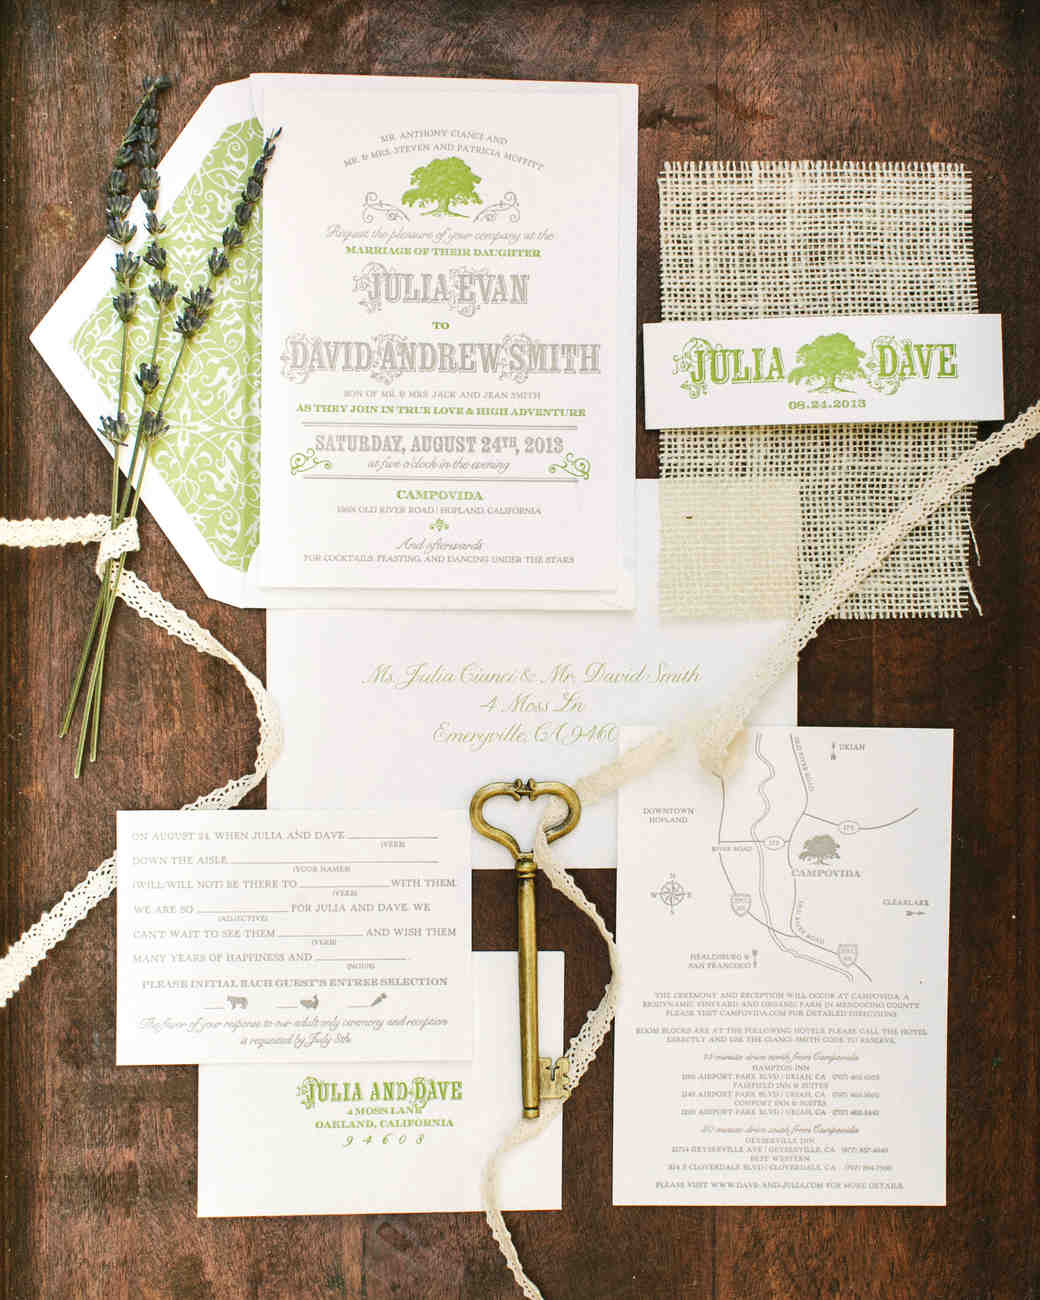 A Casual Garden Party Wedding in Northern California – Garden Party Wedding Invitations